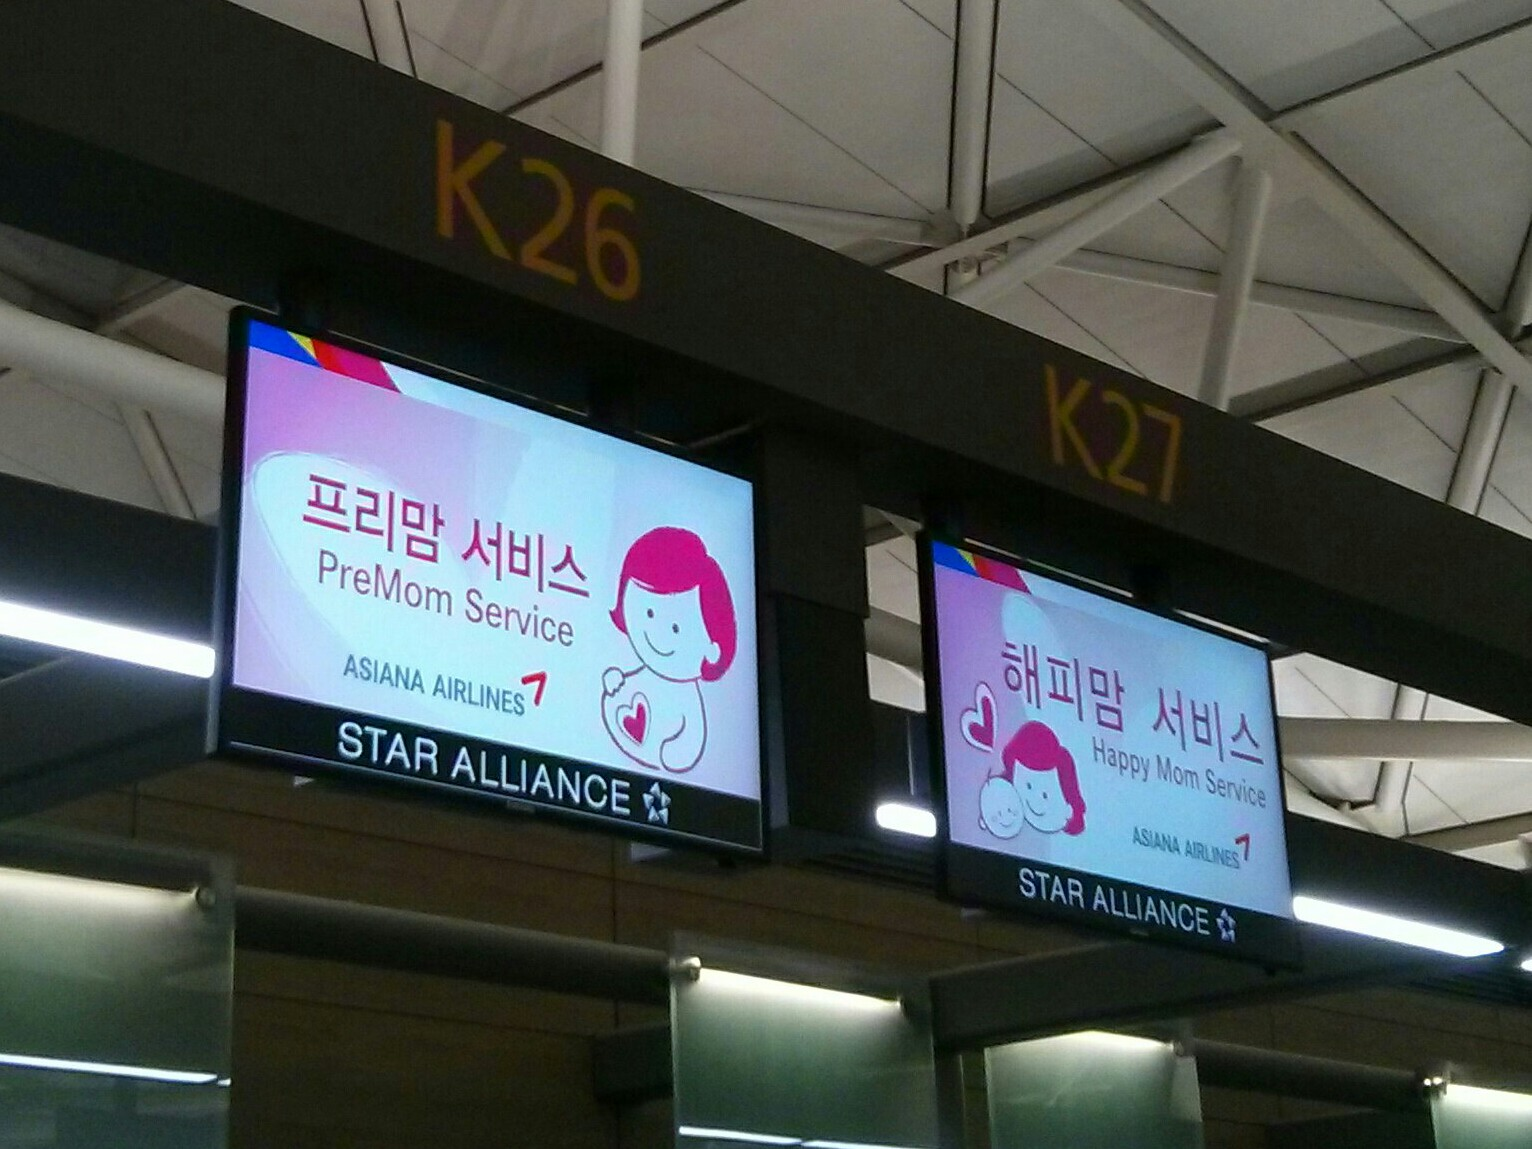 Express Line for Happy Moms at the Incheon Airport